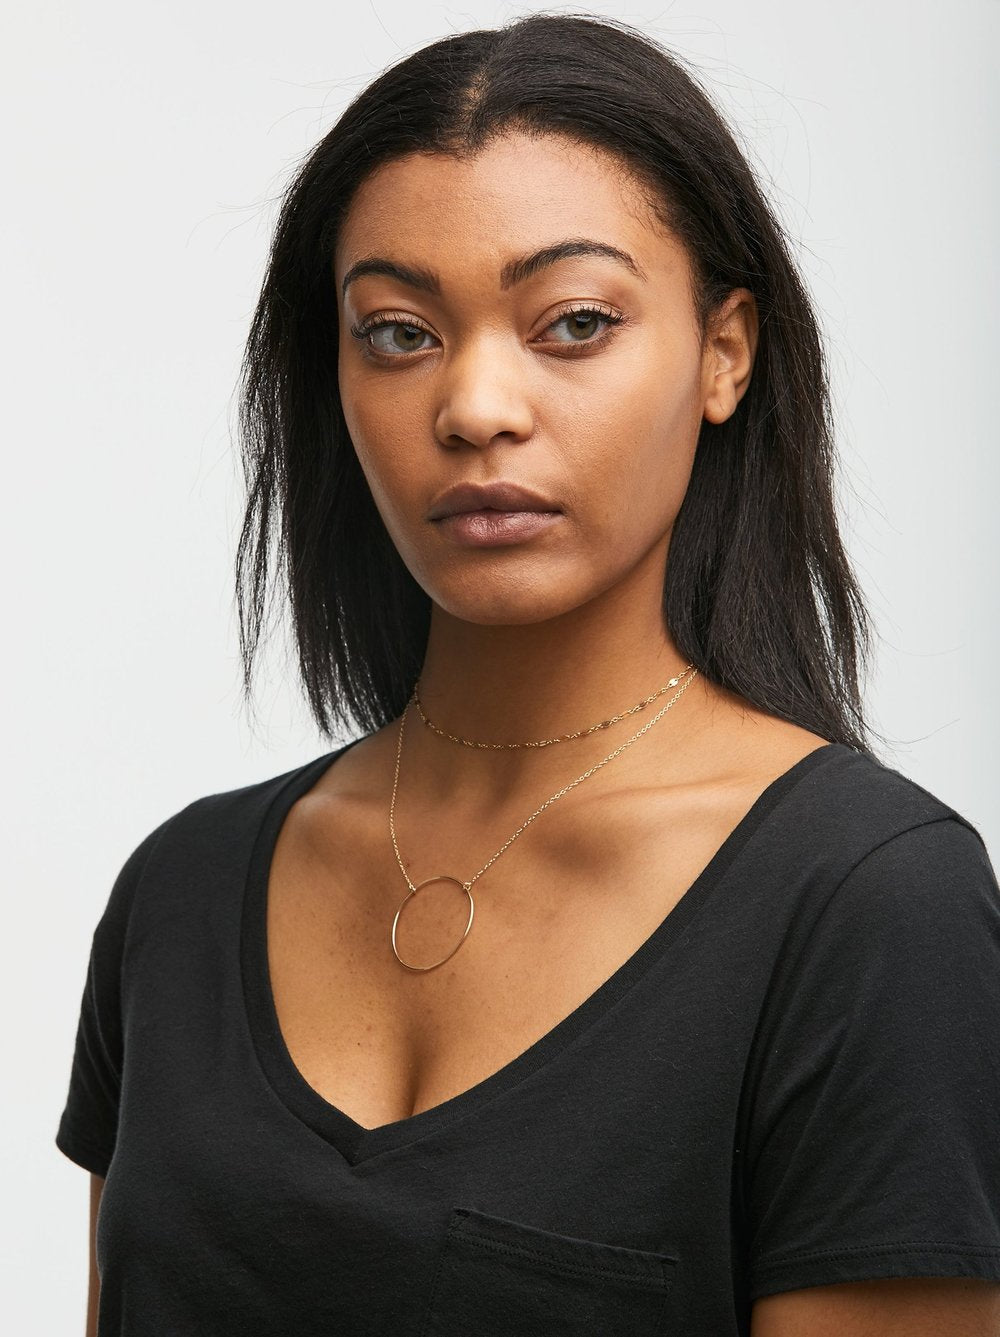 Hula_Necklace_Studio_Two_Tone.jpg